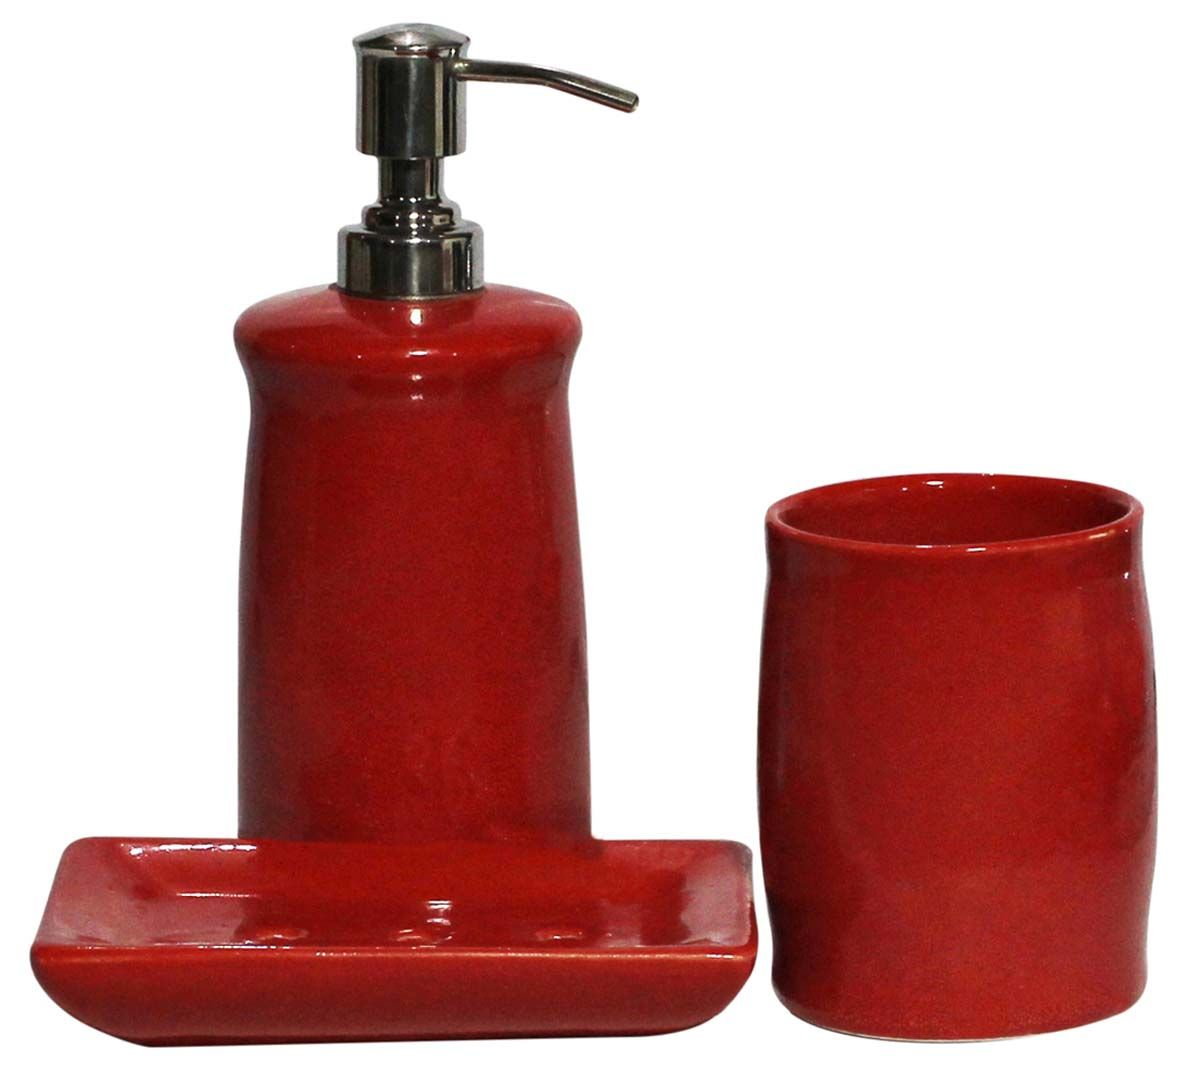 Bulk Whole Set Of 3 Bathroom Accessories In Red Color Handmade Ceramic Unique Bath Décor